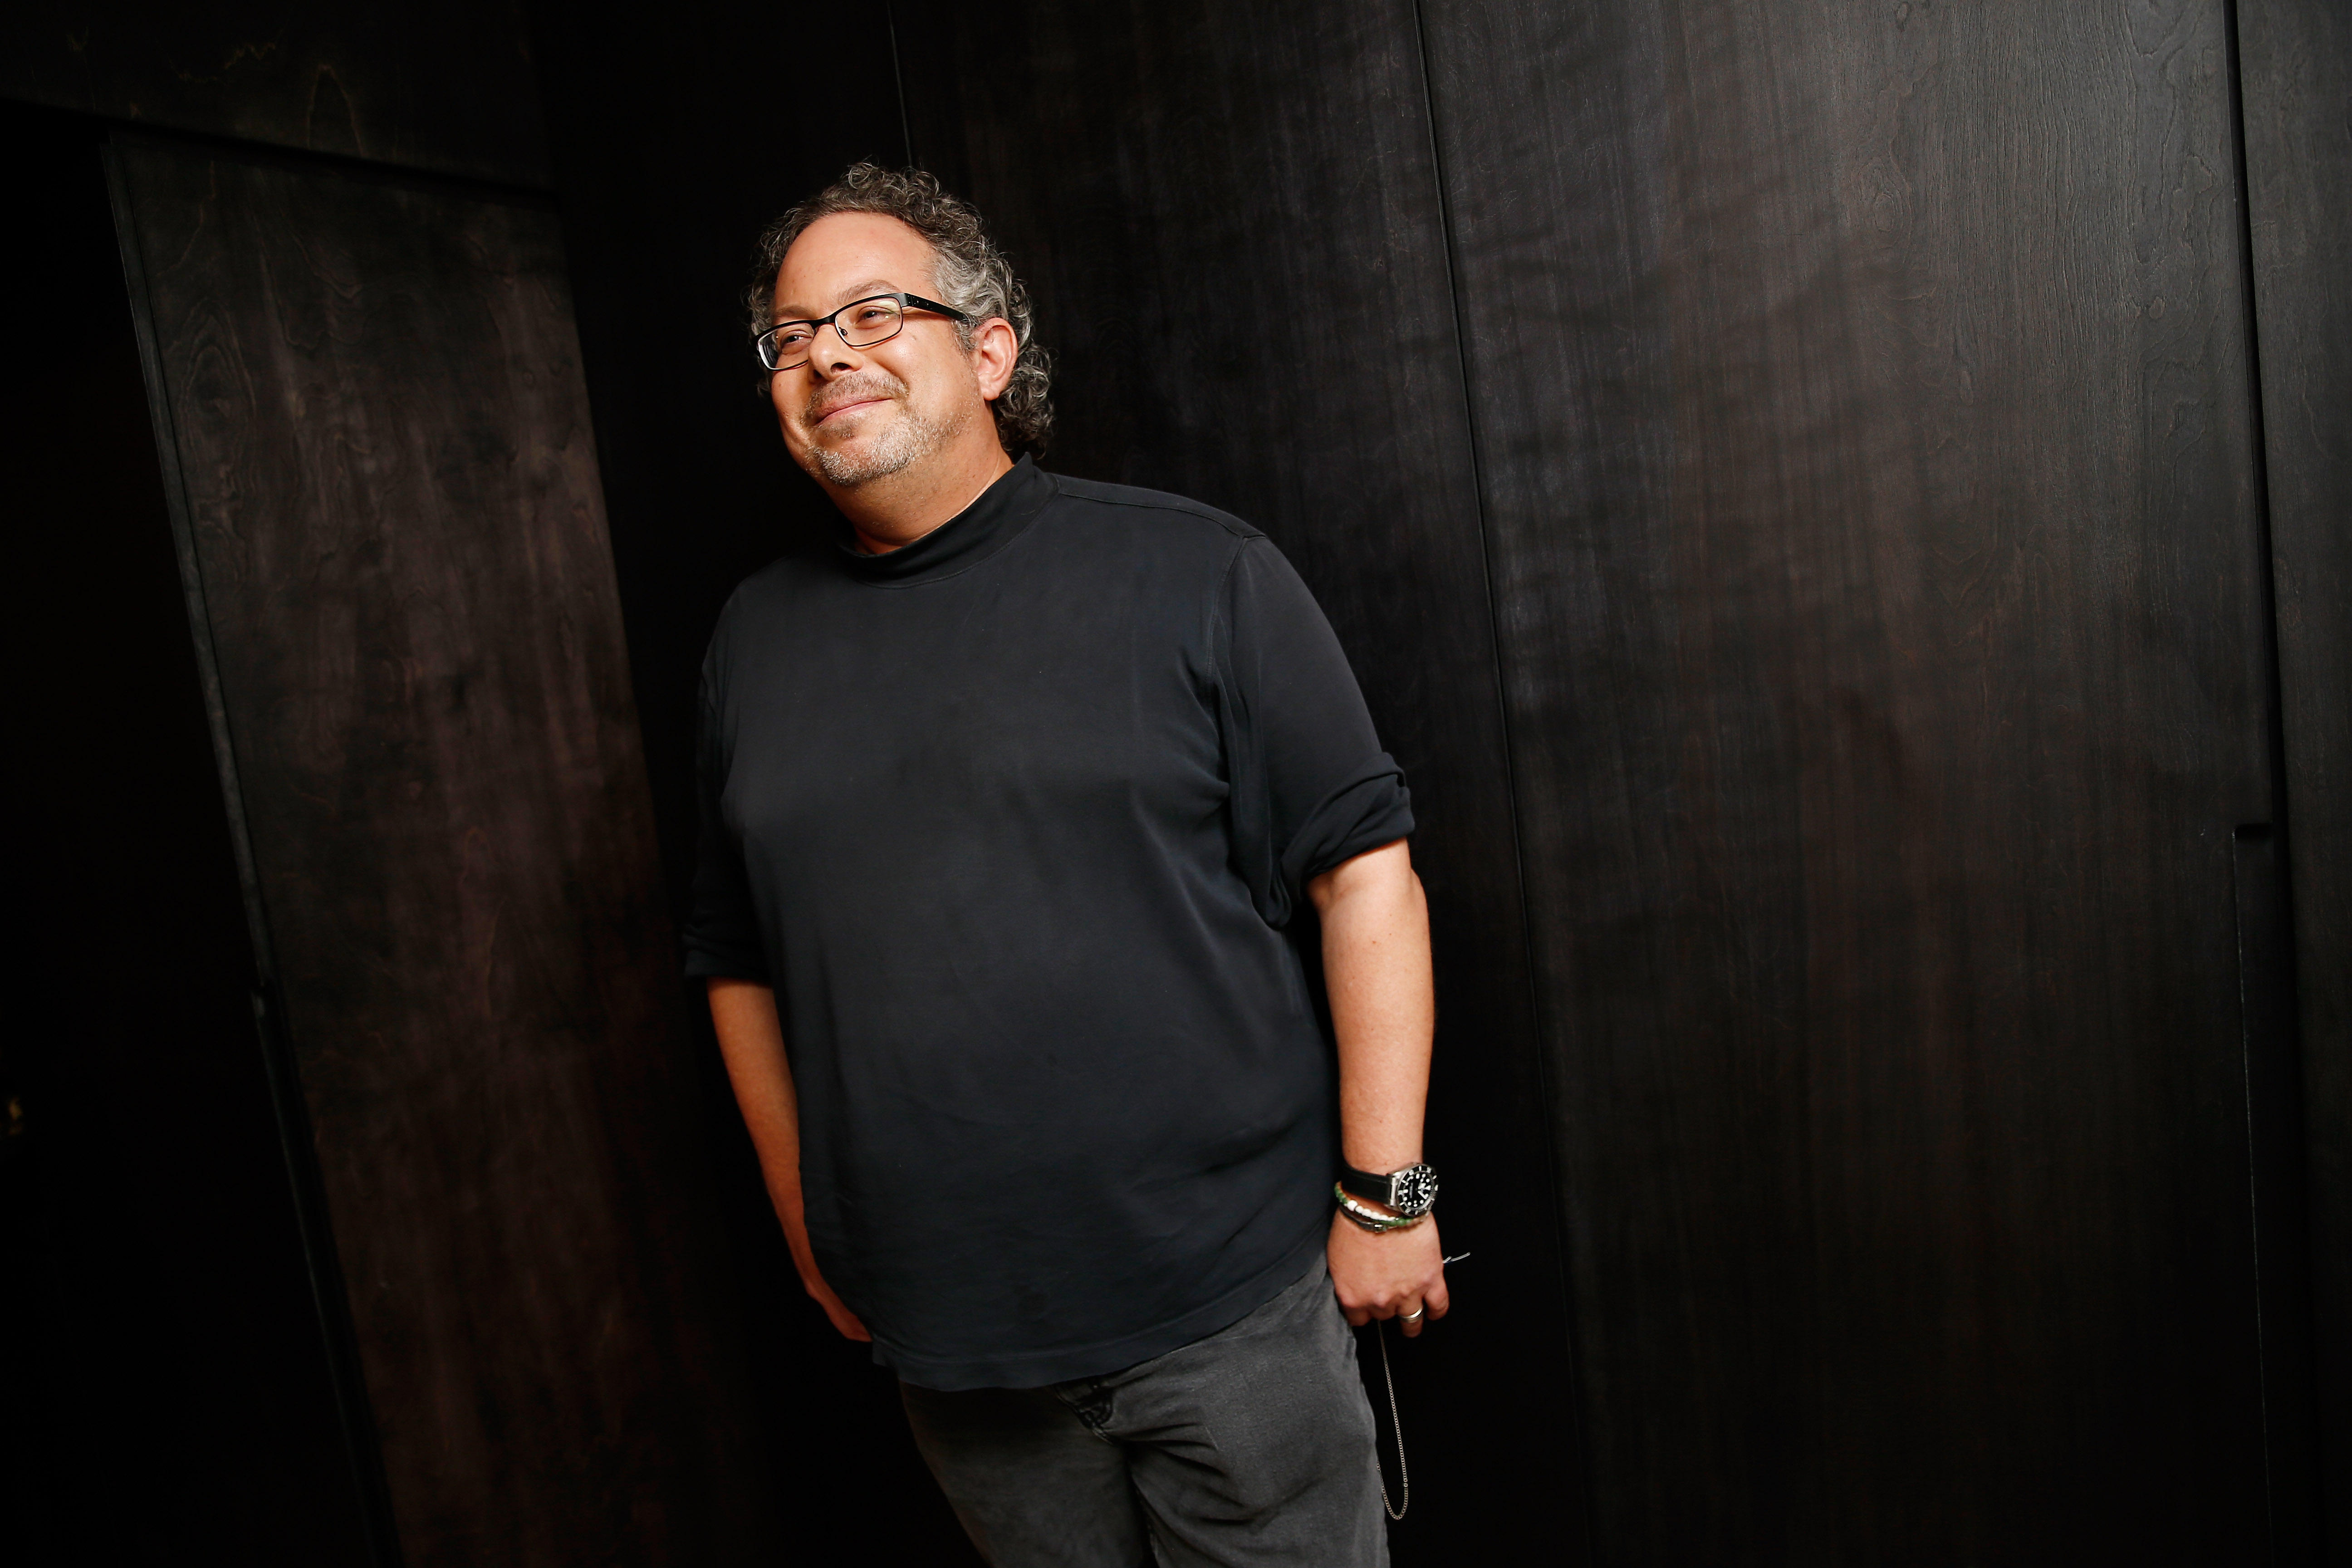 Magic Leap founder stands and smiles off camera